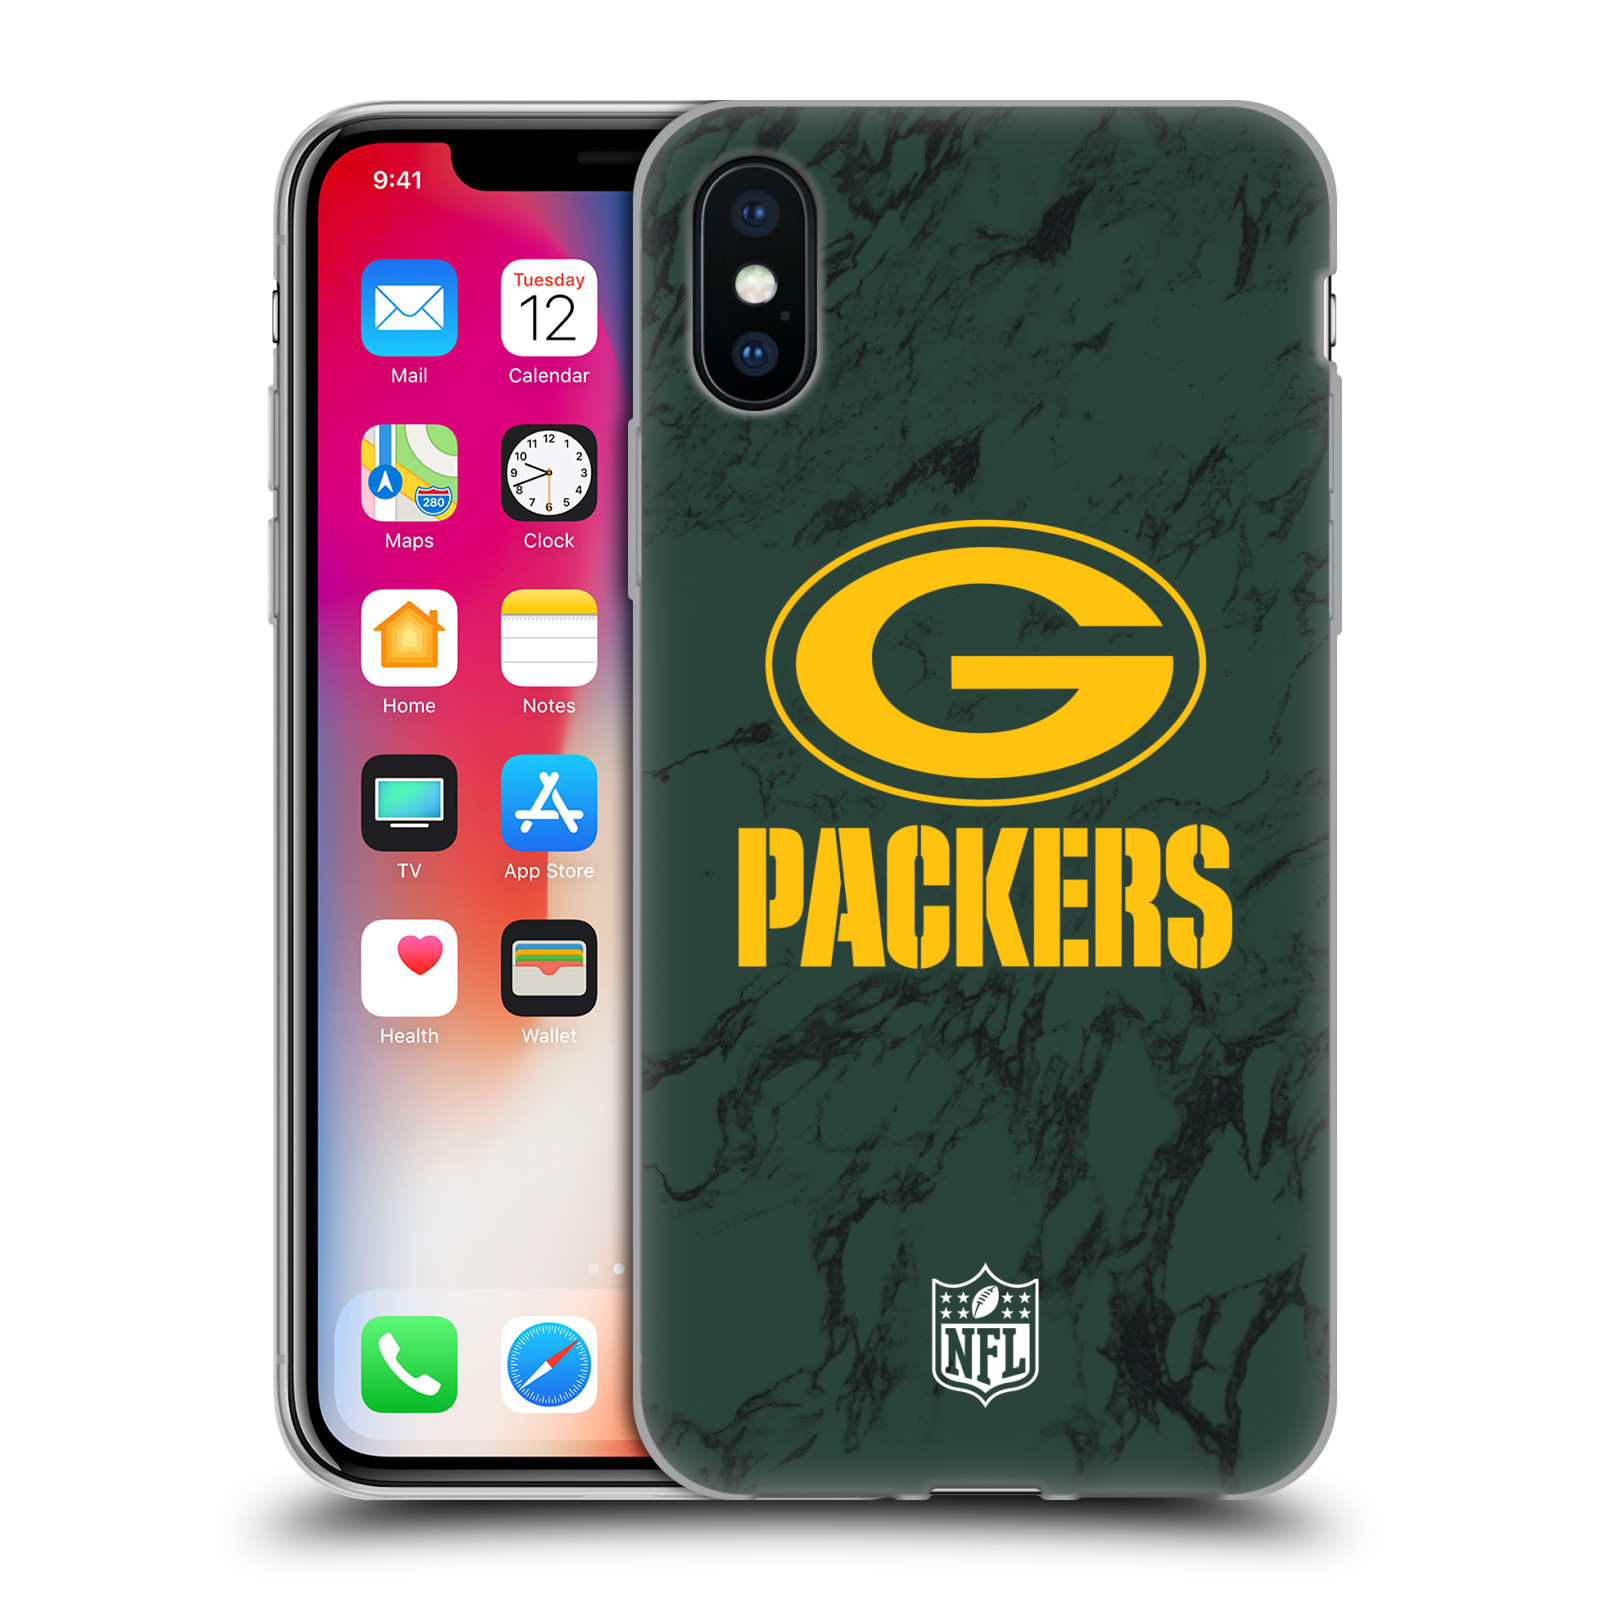 UFFICIALE-NFL-2018-19-GREEN-BAY-PACKERS-CASE-IN-GEL-PER-APPLE-iPHONE-TELEFONI